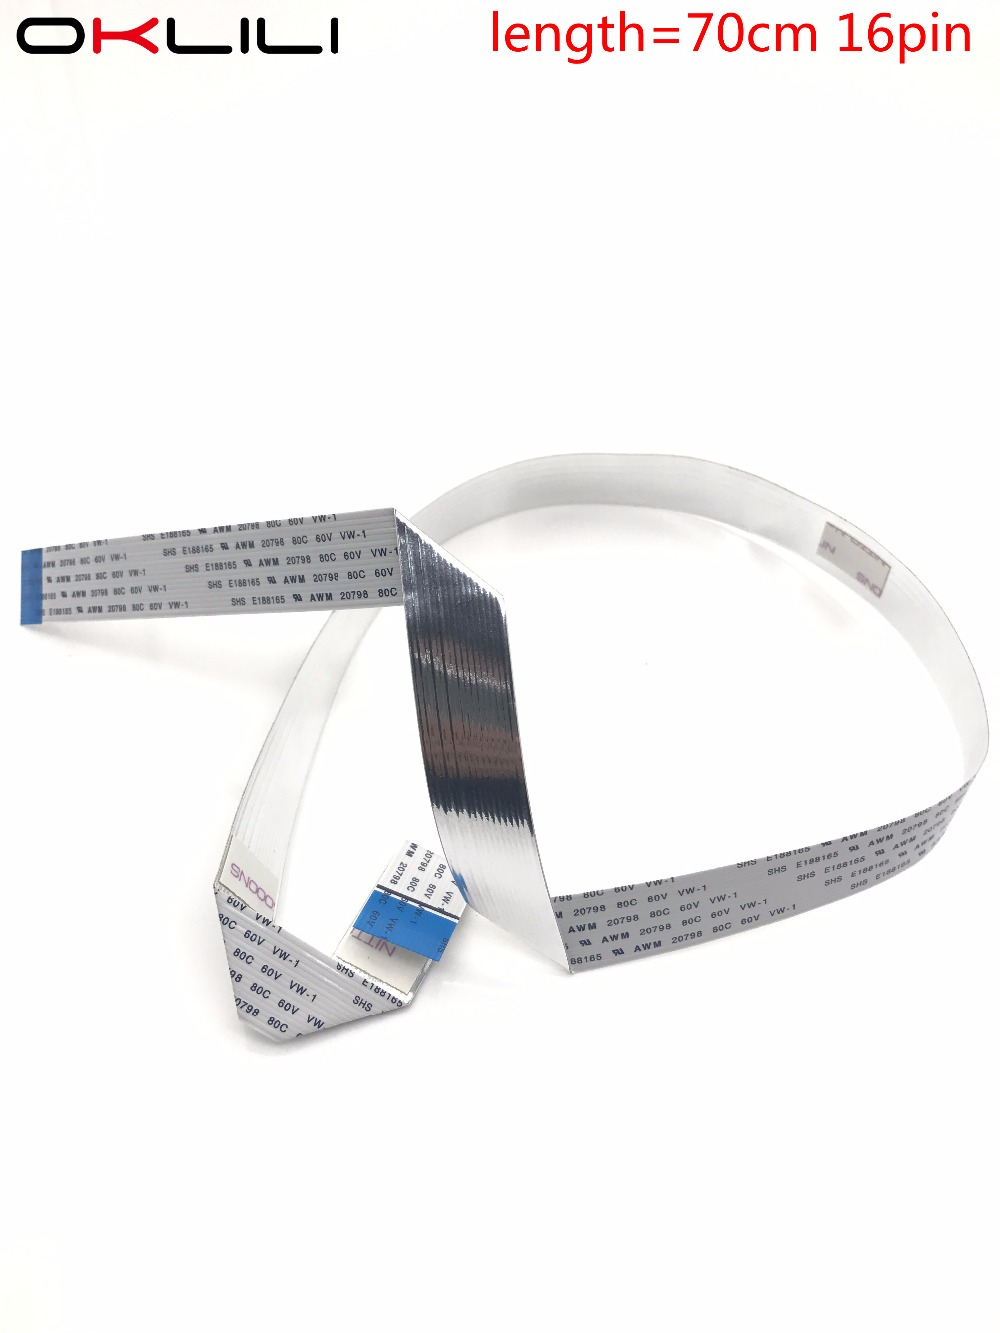 FFC Flex CCD SCANNER FLAT CABLE CIS RADF for SAMSUNG CLX3300 CLX3305 M3370 M3375 M3870 M3875 M4070 M4075 SCX4833 SCX4835 SCX5030 new emay gaahoo power led or microphone board ffc flex cable for dell xps13 9343 9350 9360 fru 0m7kyc cn 0m7kyc